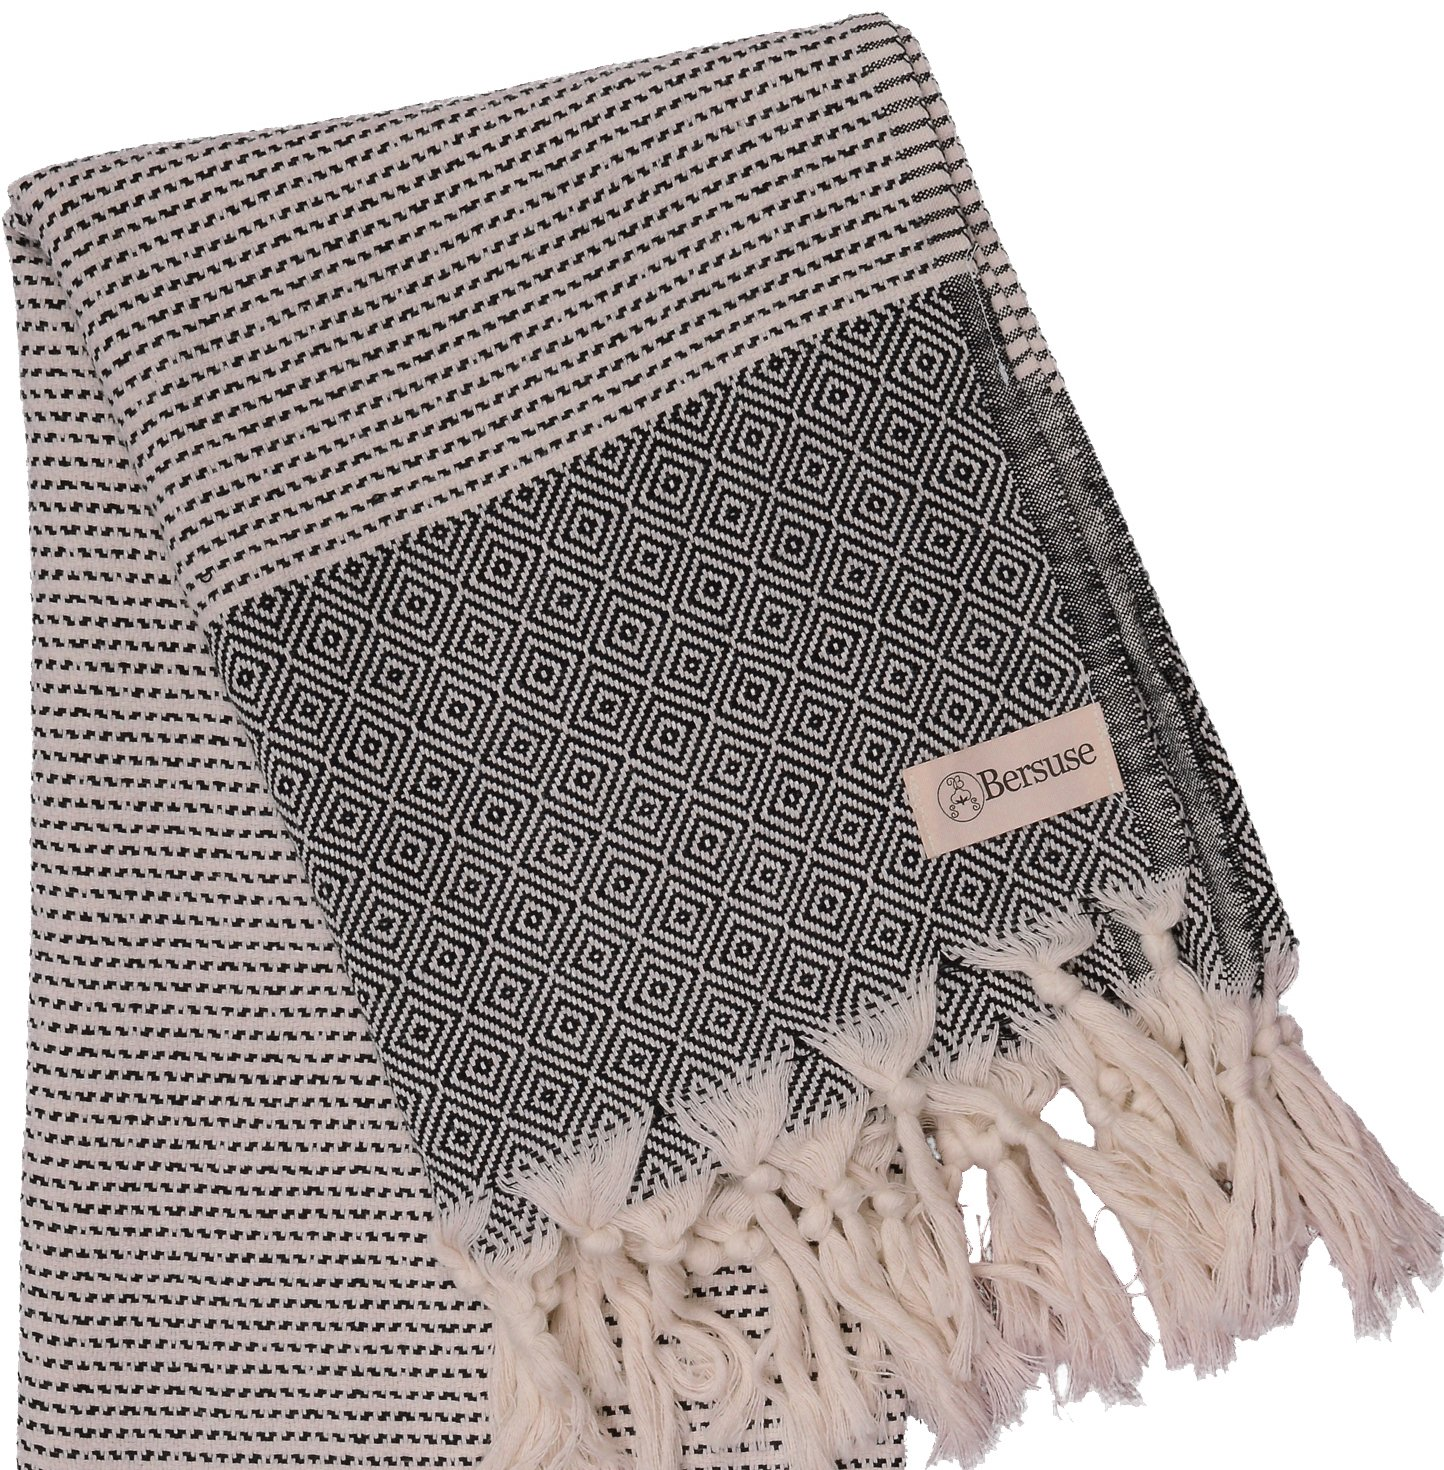 Bersuse 100% Cotton Hierapolis XL Blanket Turkish Towel, 60X95 Inches, Black - LARGE AND STYLISH: Offers soft, relaxing comfortability for indoor/outdoor, home, beach, camping, picnic, or travel. Add gorgeous value and elegance to a couch, chair or bed by choosing a color that matches your bedroom or living room decor. ABSORBENT & GENTLE ON SKIN: Our linen flat woven towels dry you off quickly. They are ultra soft and great for infants, baby care, toddlers and adults with sensitive skin. QUICK DRYING: Dries way more quickly both by air and tumble drier. They are -unlike fluffy cotton towels- so they do not get smelly. - blankets-throws, bedroom-sheets-comforters, bedroom - 917DslllivL -